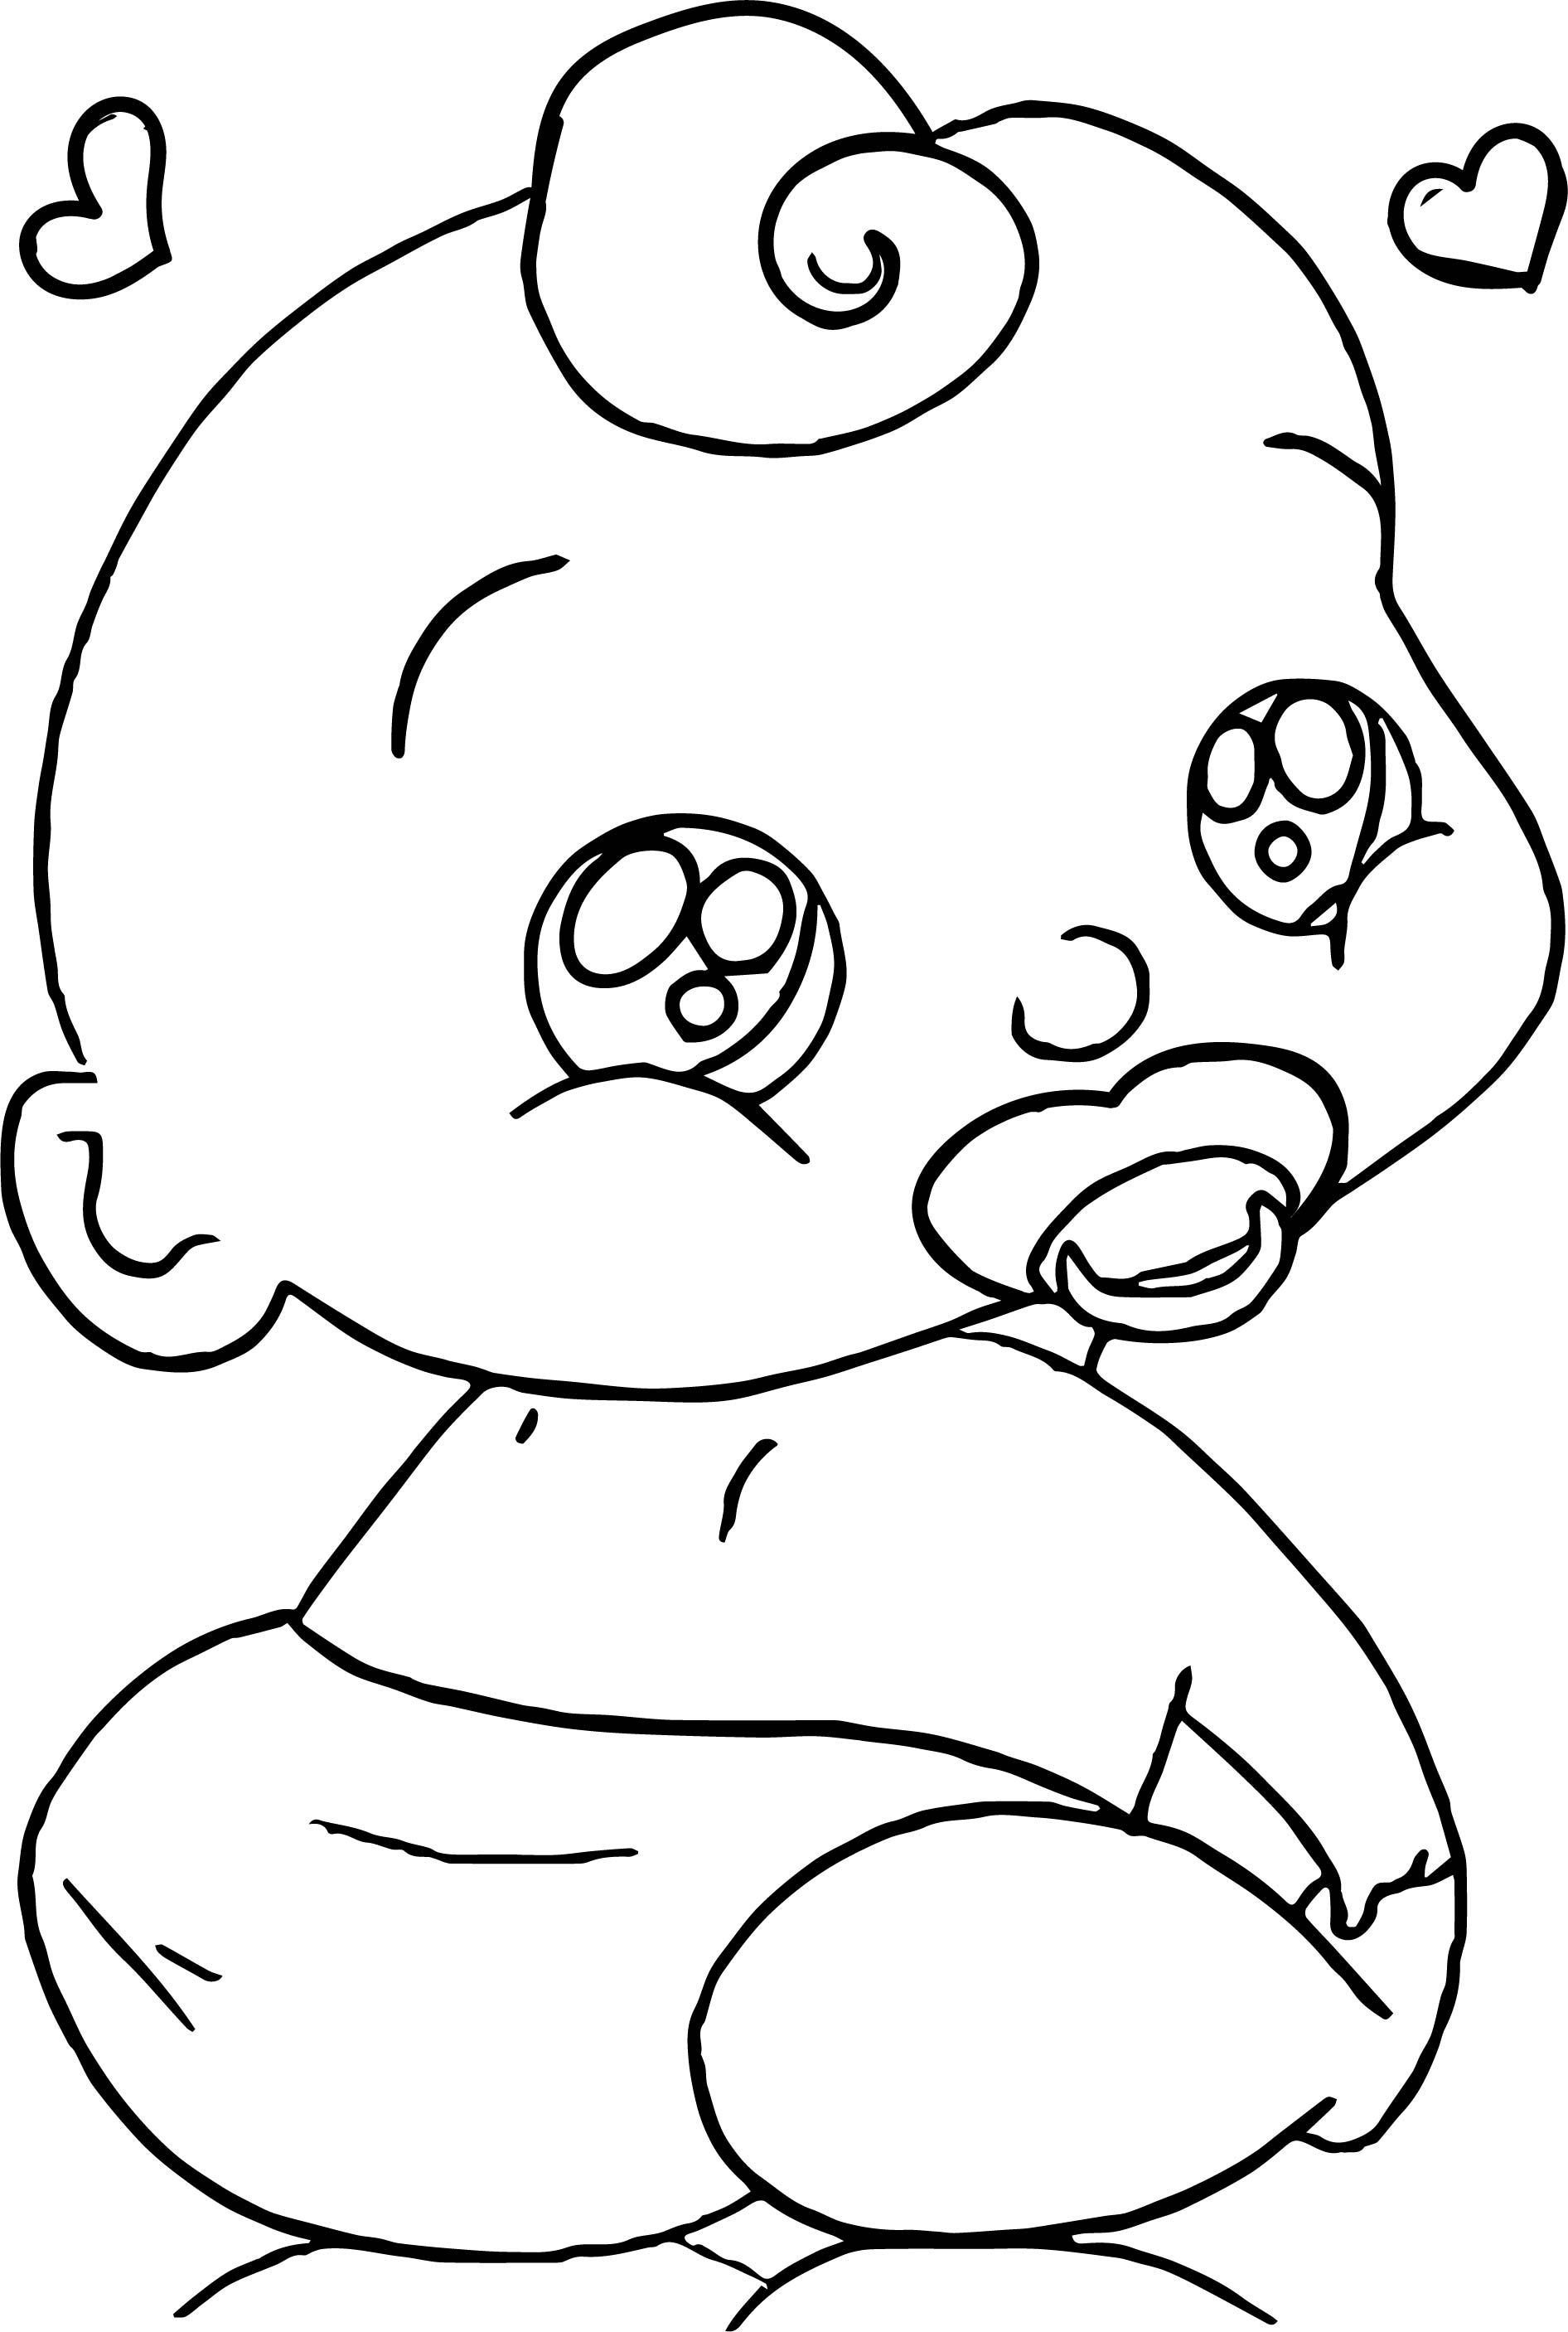 Awesome Baby Boy Cartoon Faces Coloring Page